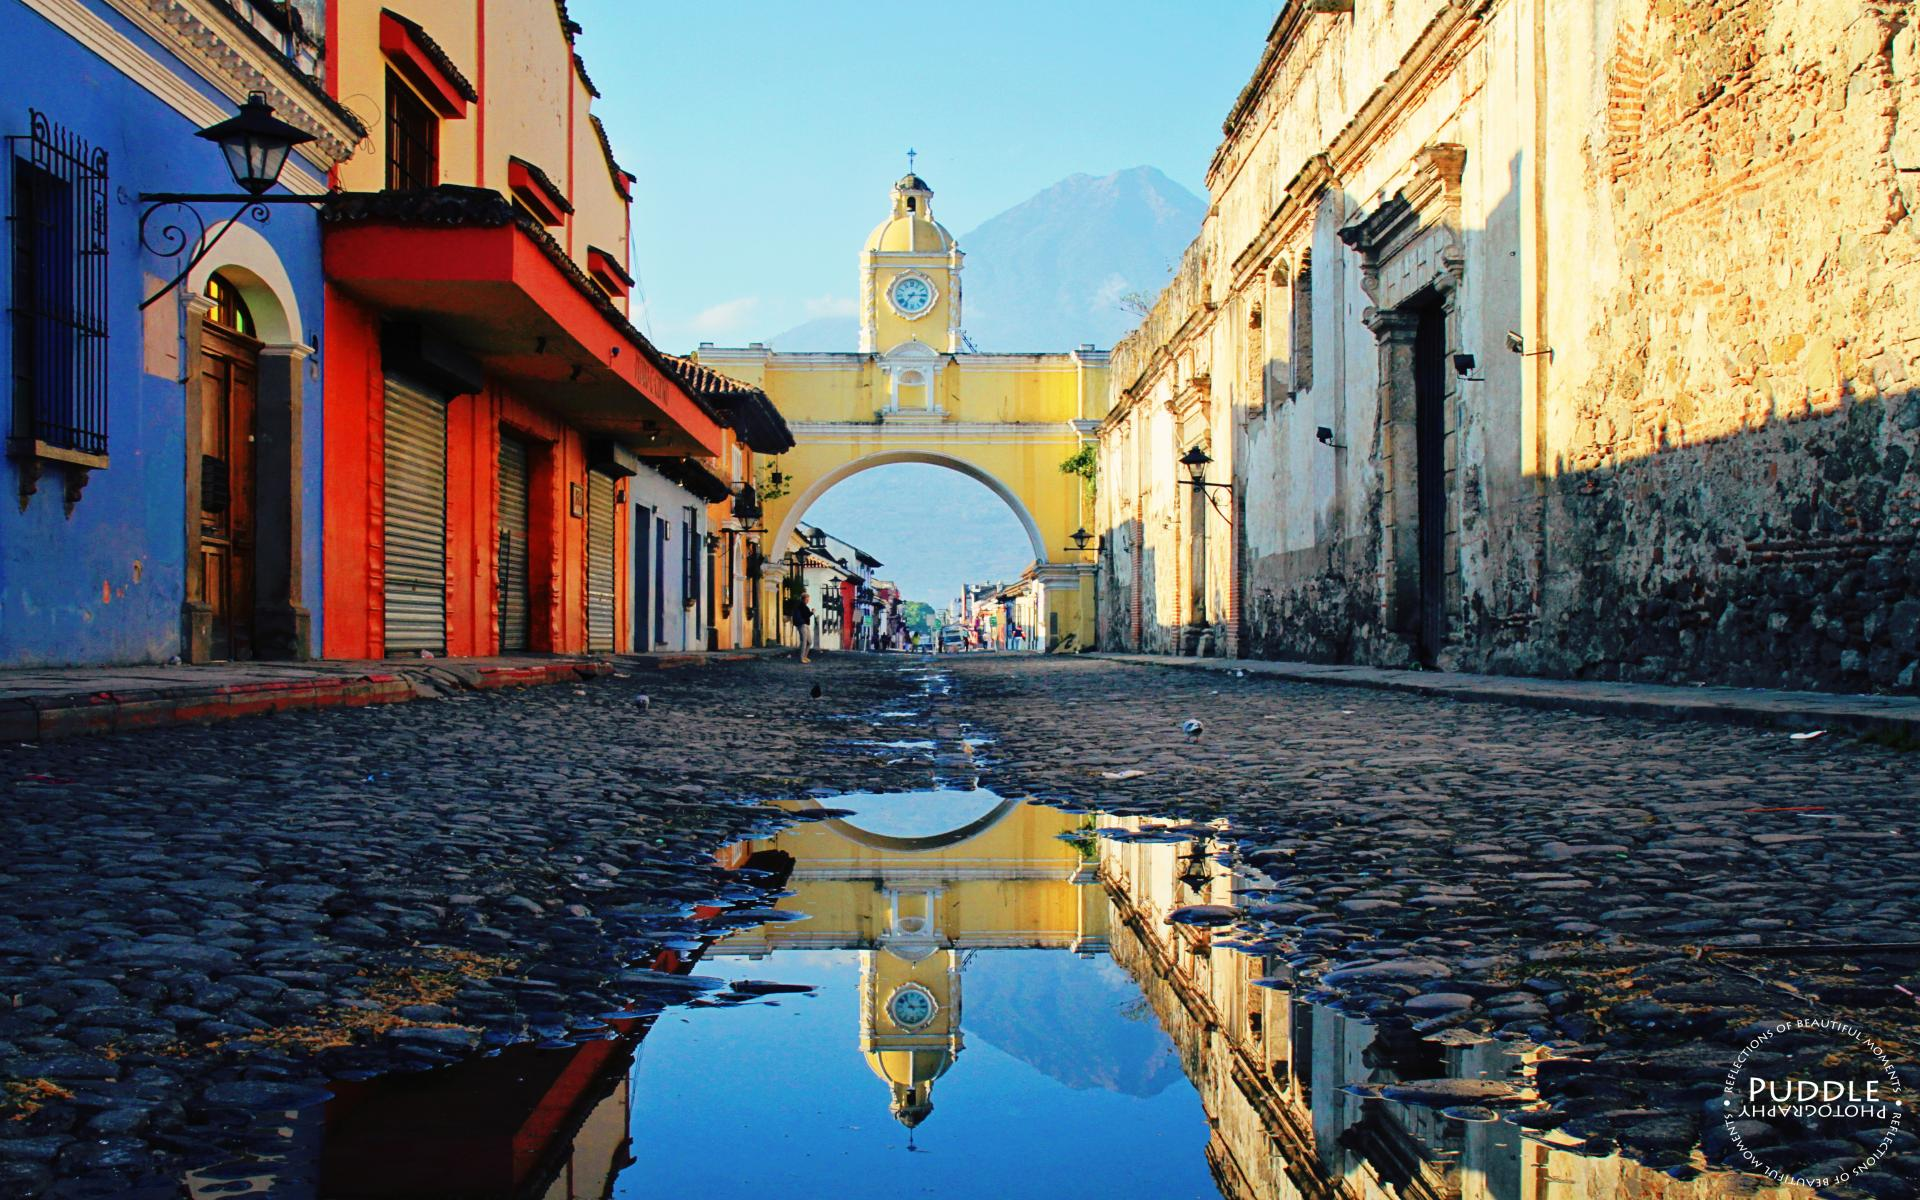 General 1920x1200 Guatemala town street water cobblestone clocktowers old building house arch mountains reflection people watermarked Arch of Santa Catalina Arco de Santa Catalina Antigua Guatemala